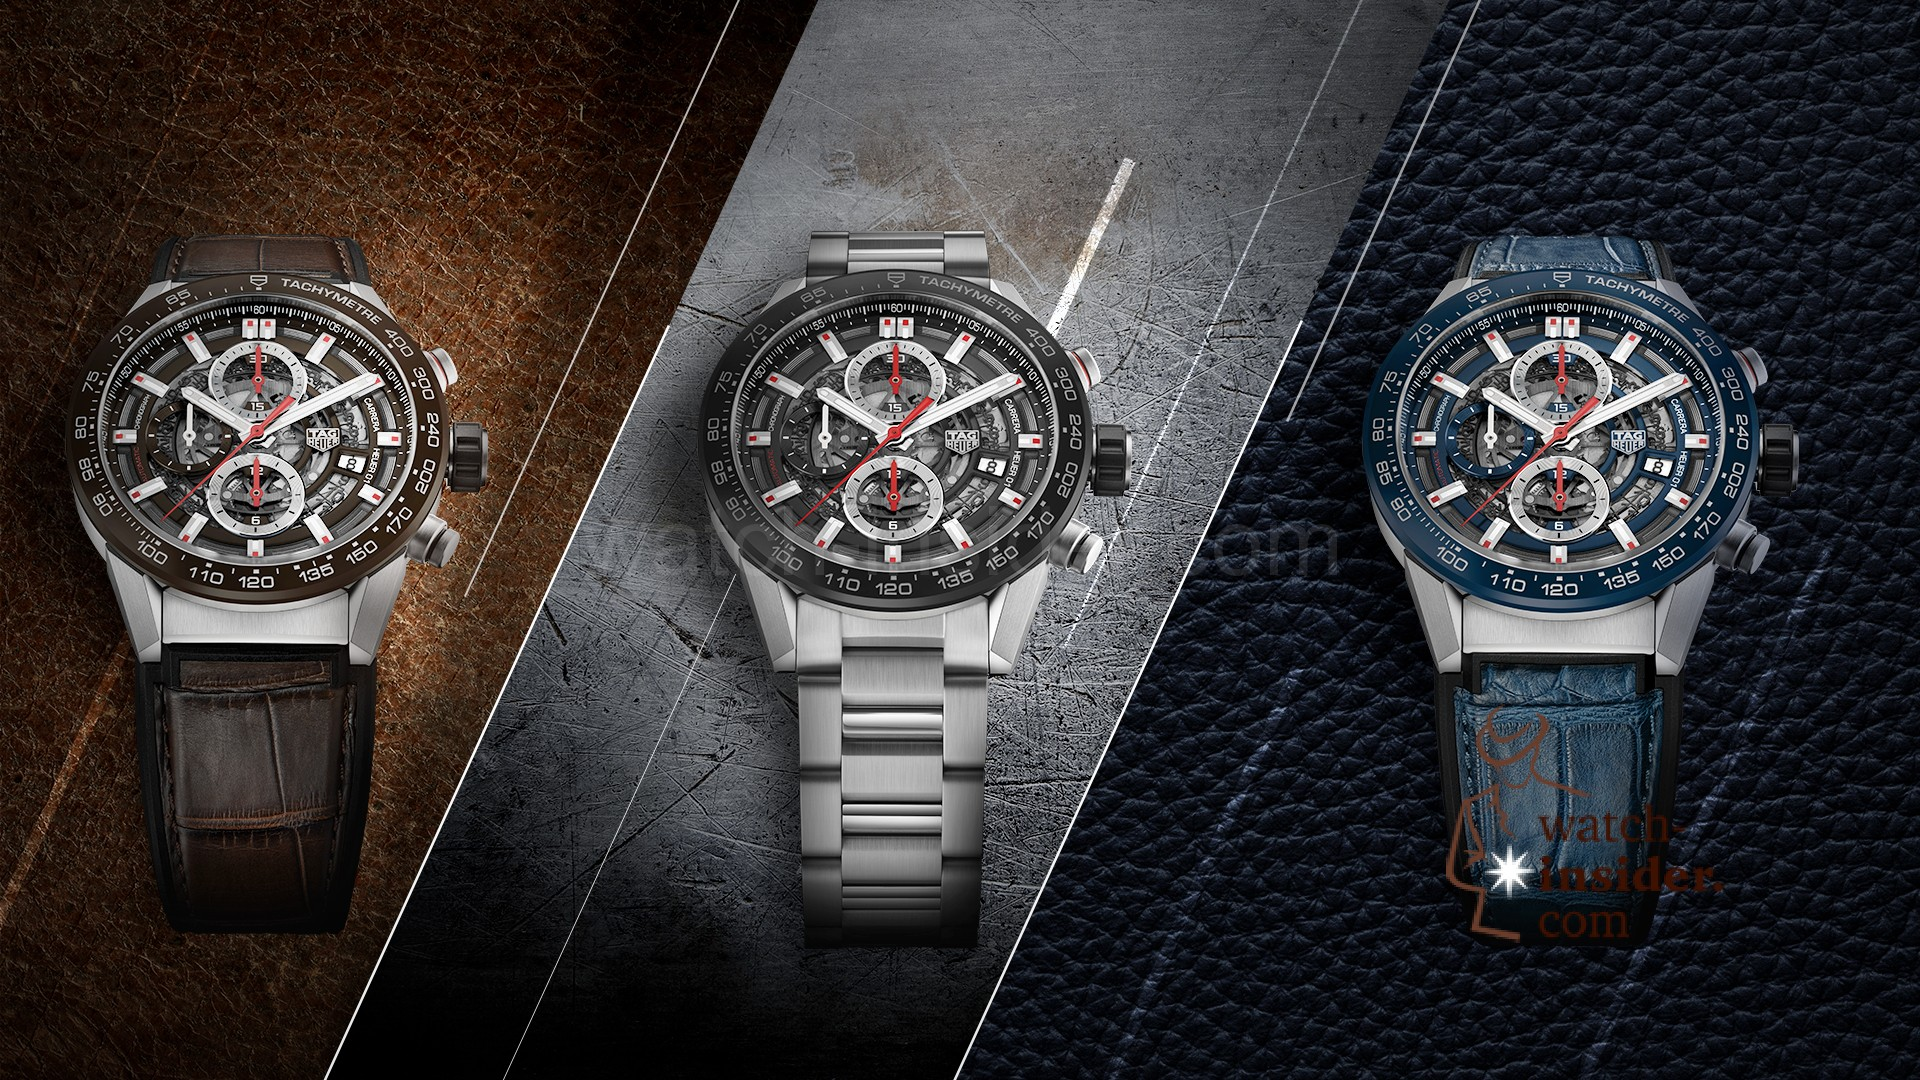 c5c10791b2ac Three new TAG Heuer CARRERA Heuer-01 43 mm chronographs – Watch ...